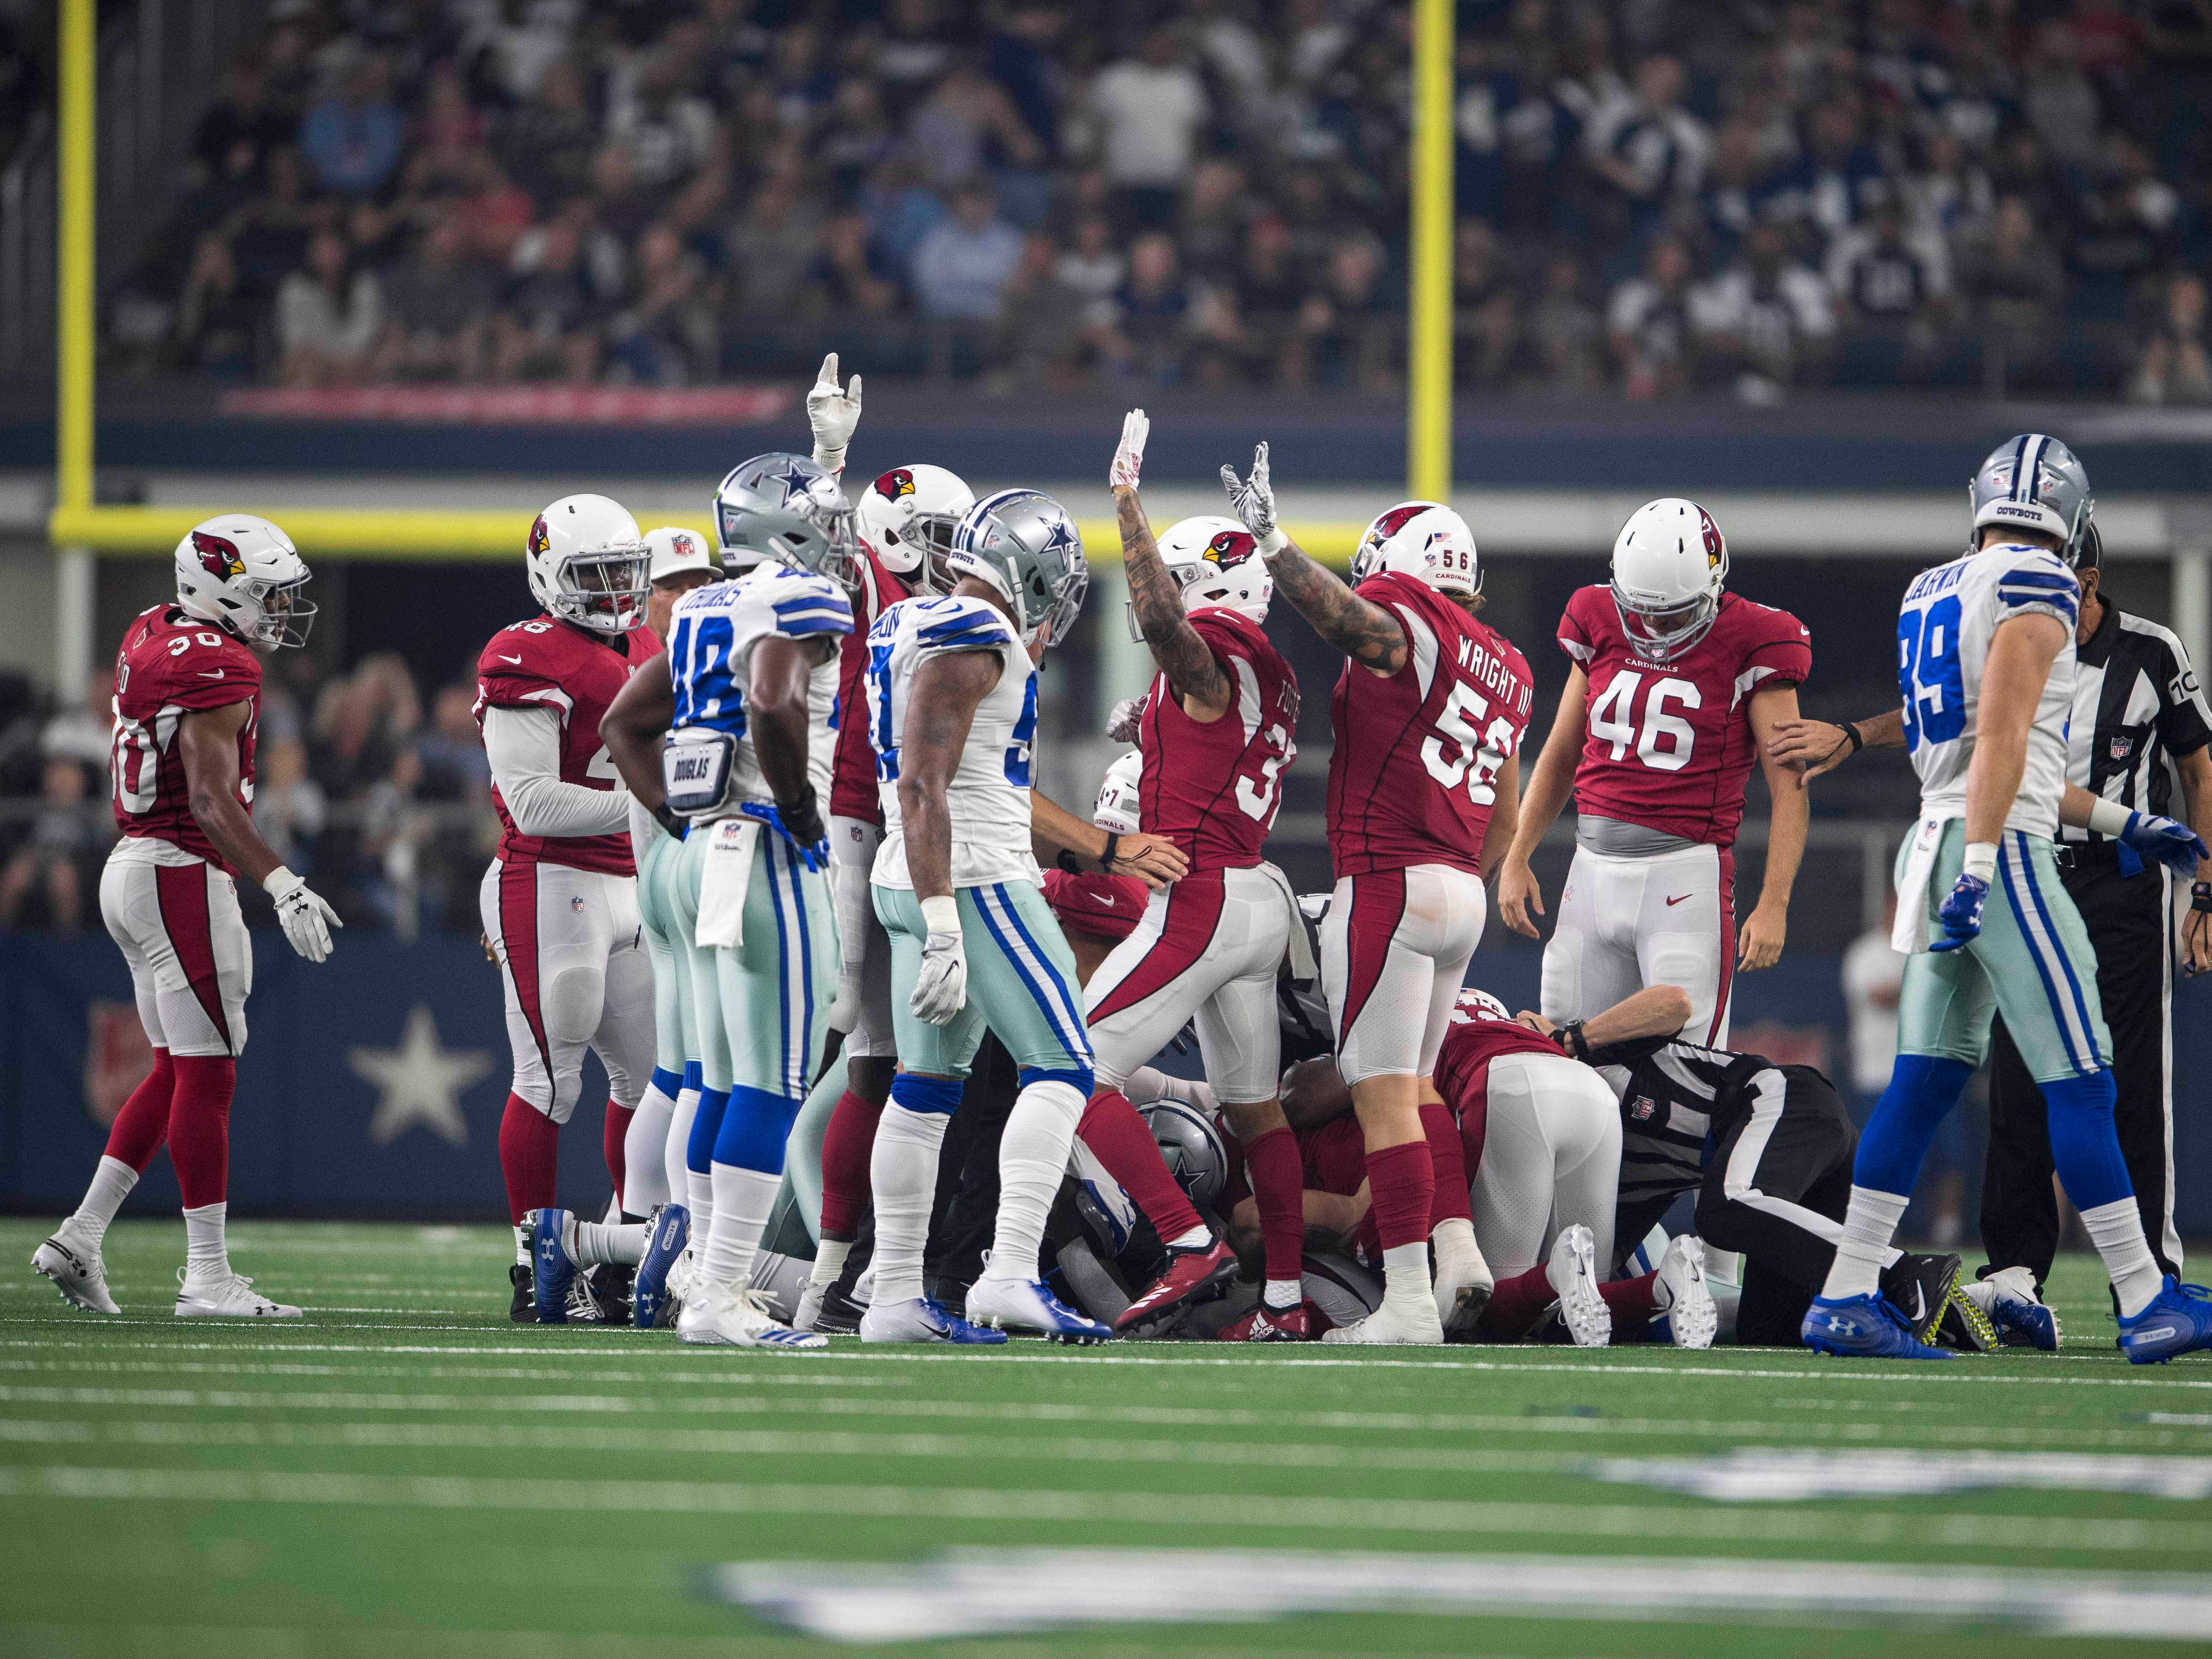 Aug 26, 2018; Arlington, TX, USA; The Arizona Cardinals celebrate recovering a fumble by Dallas Cowboys wide receiver Lance Lenoir (14) during the first quarter at AT&T Stadium.